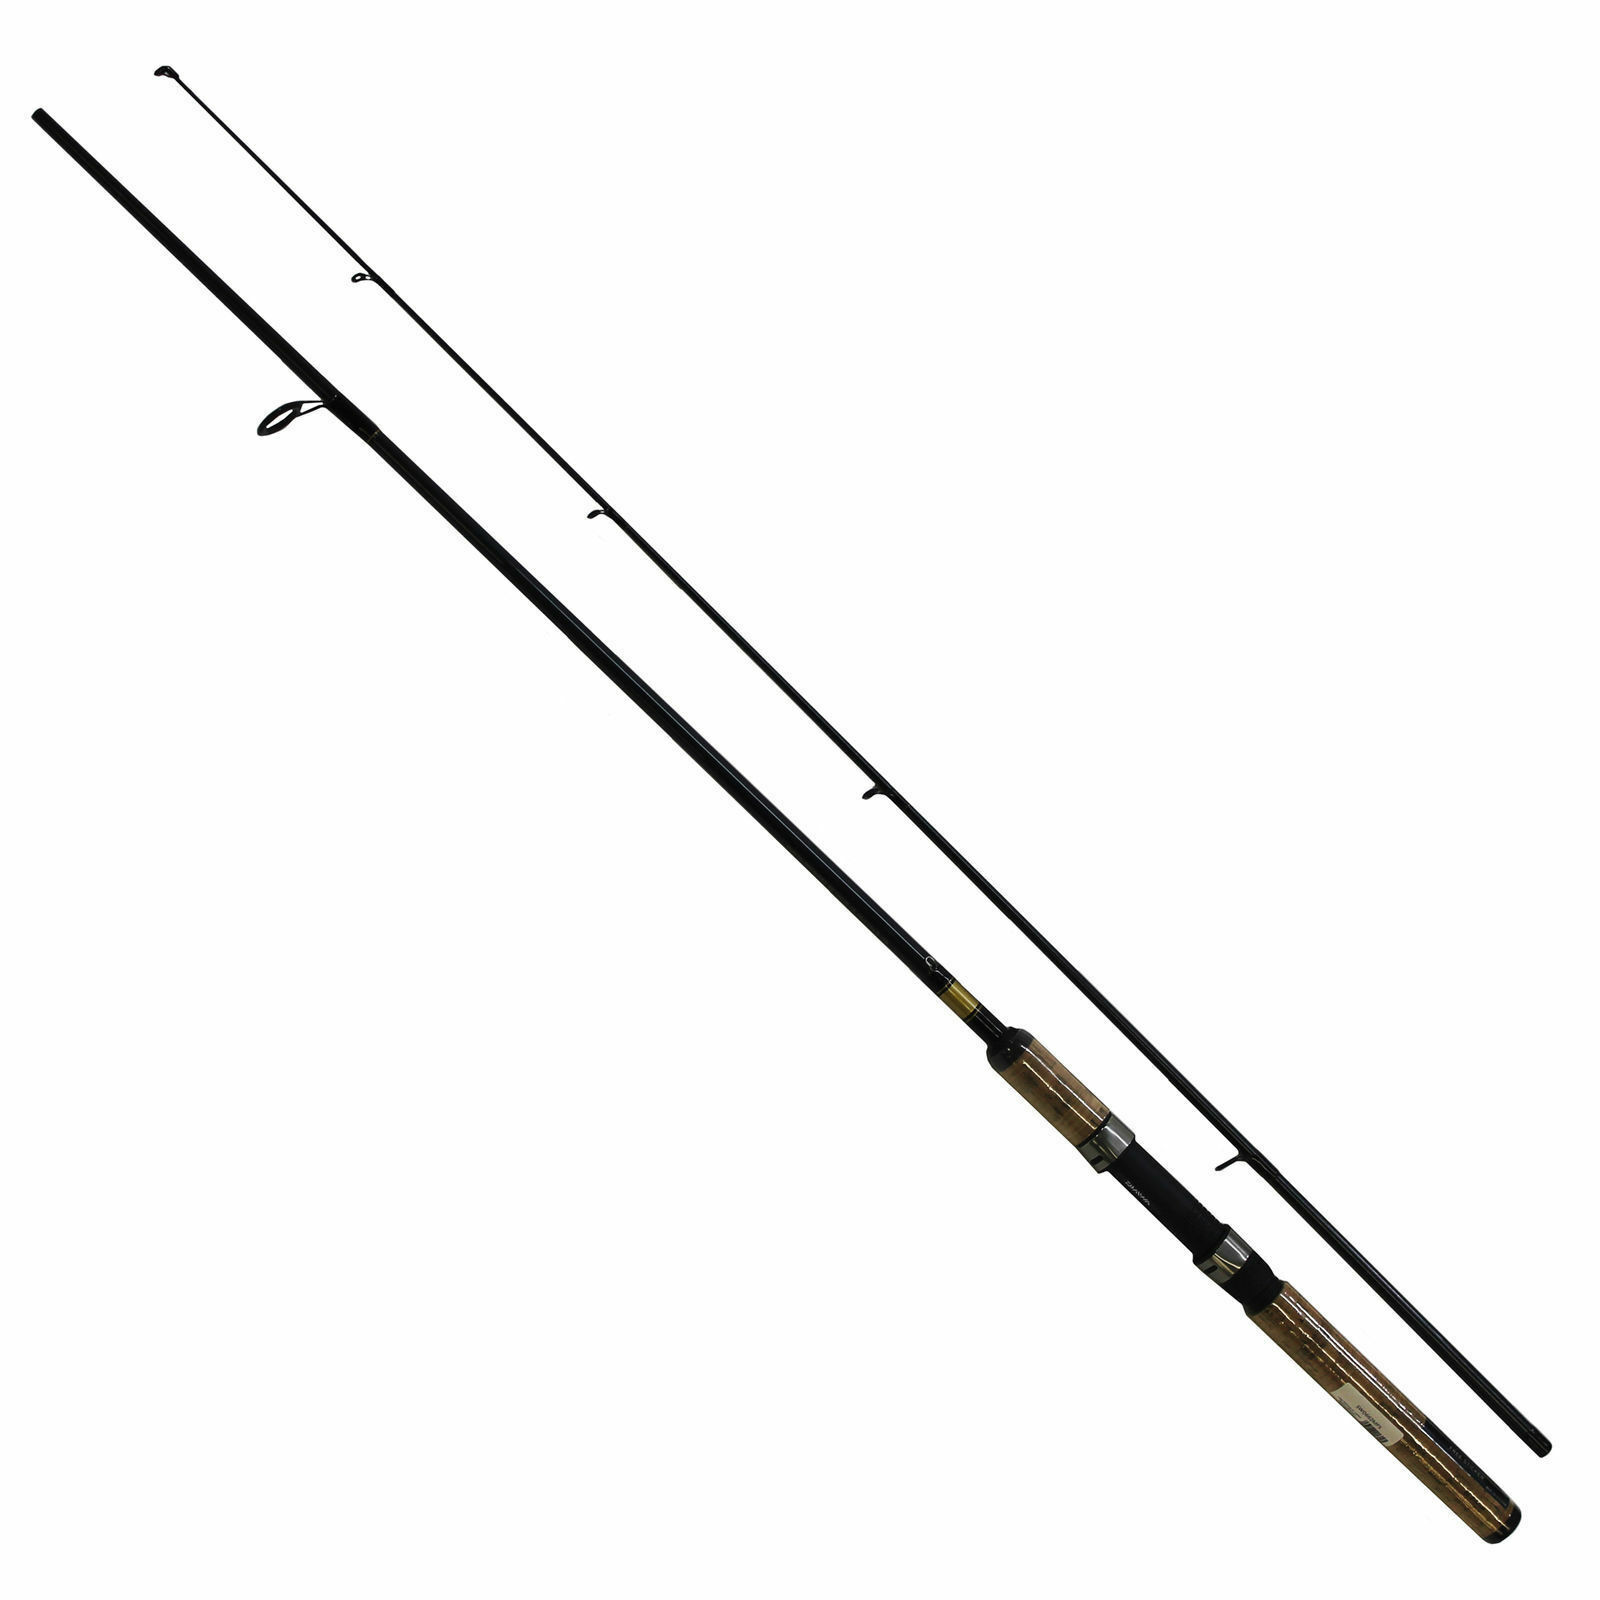 New DAIWA Sweepfire Spinning  Rods 7 ft. 2pc. Med. Heavy Action SWD702MHFS  best quality best price